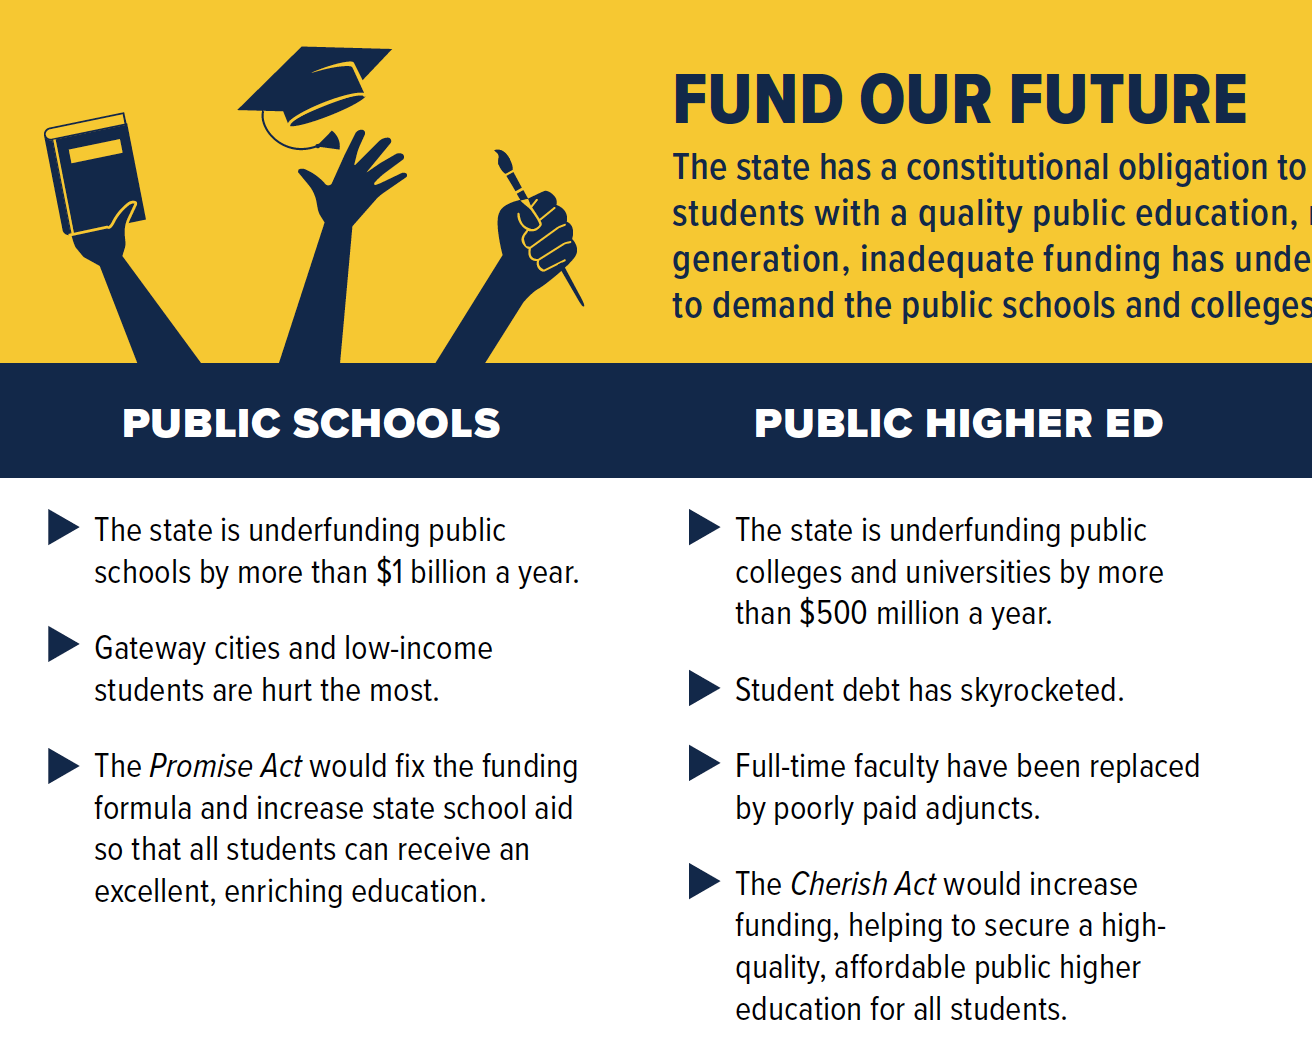 Take Action - Fund Our Future